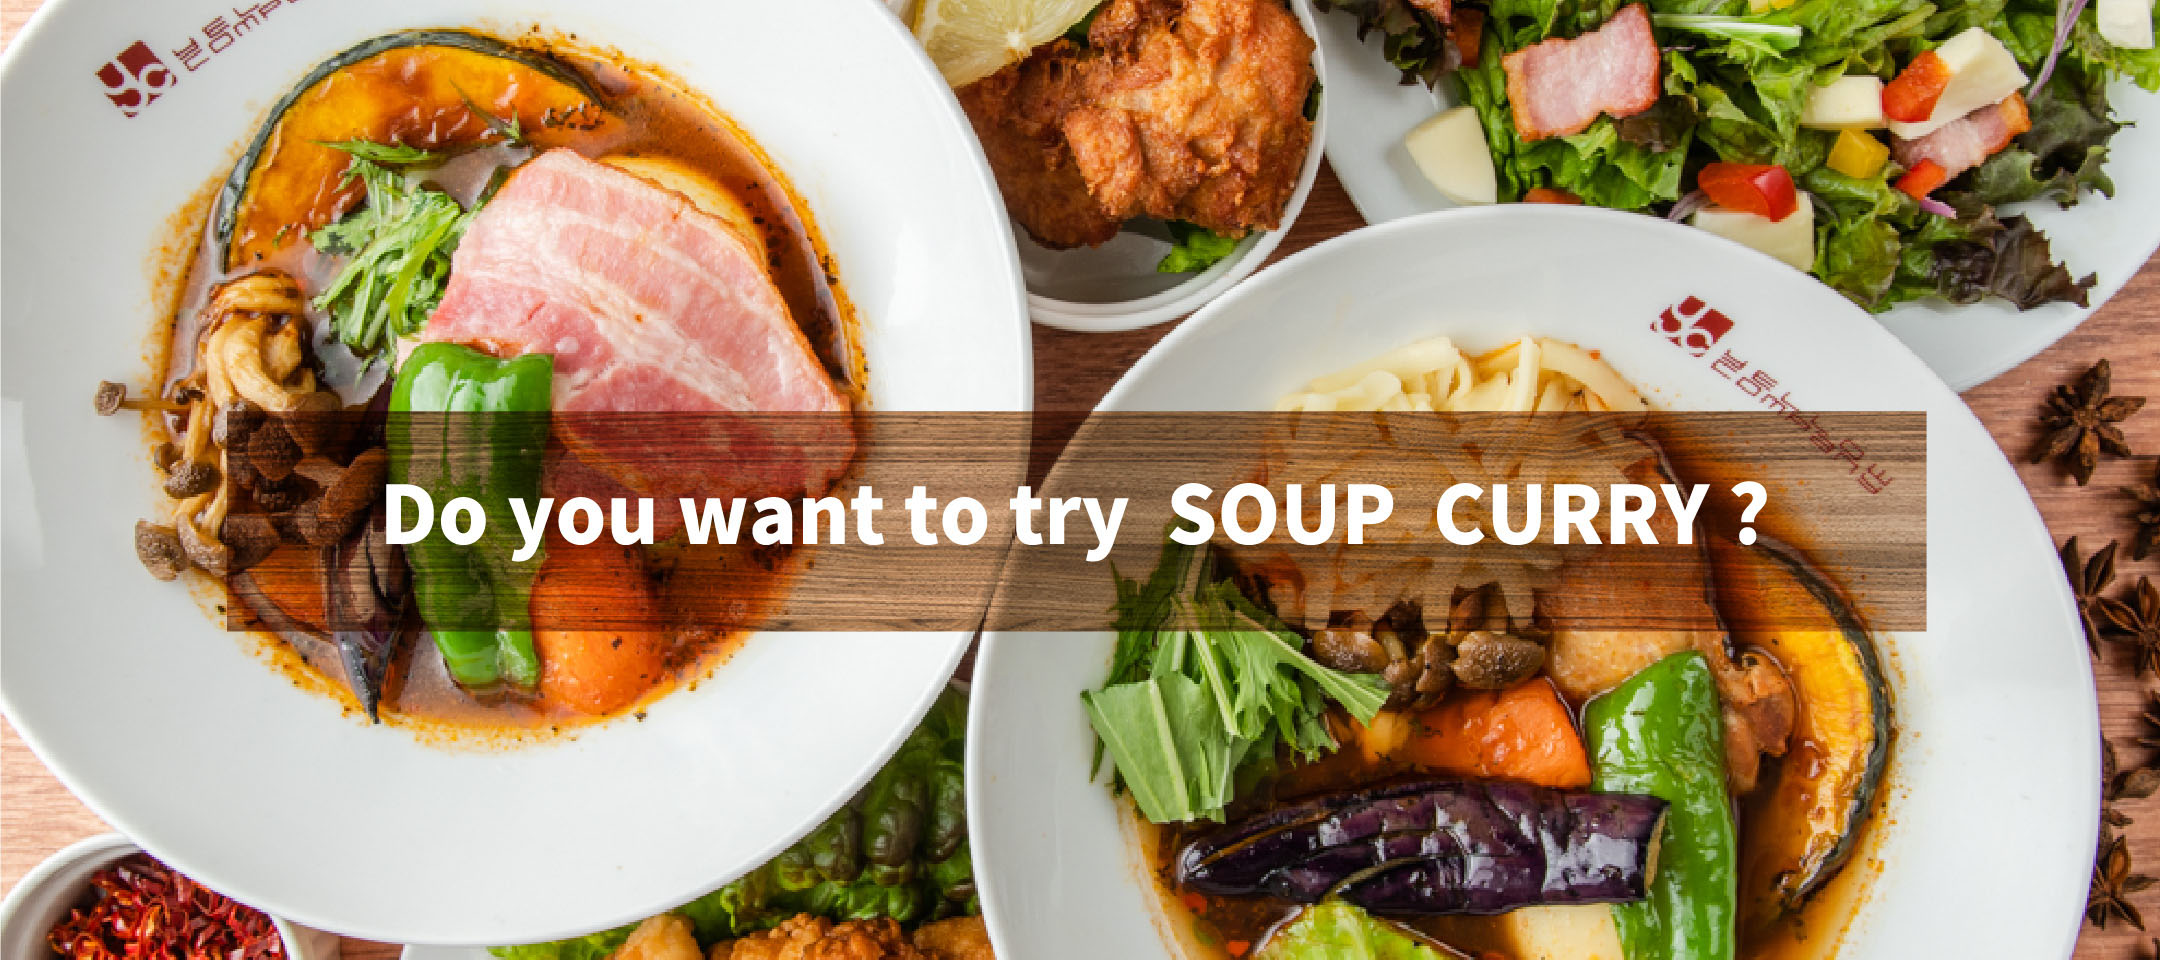 Do you want to try SOUP CURRY?